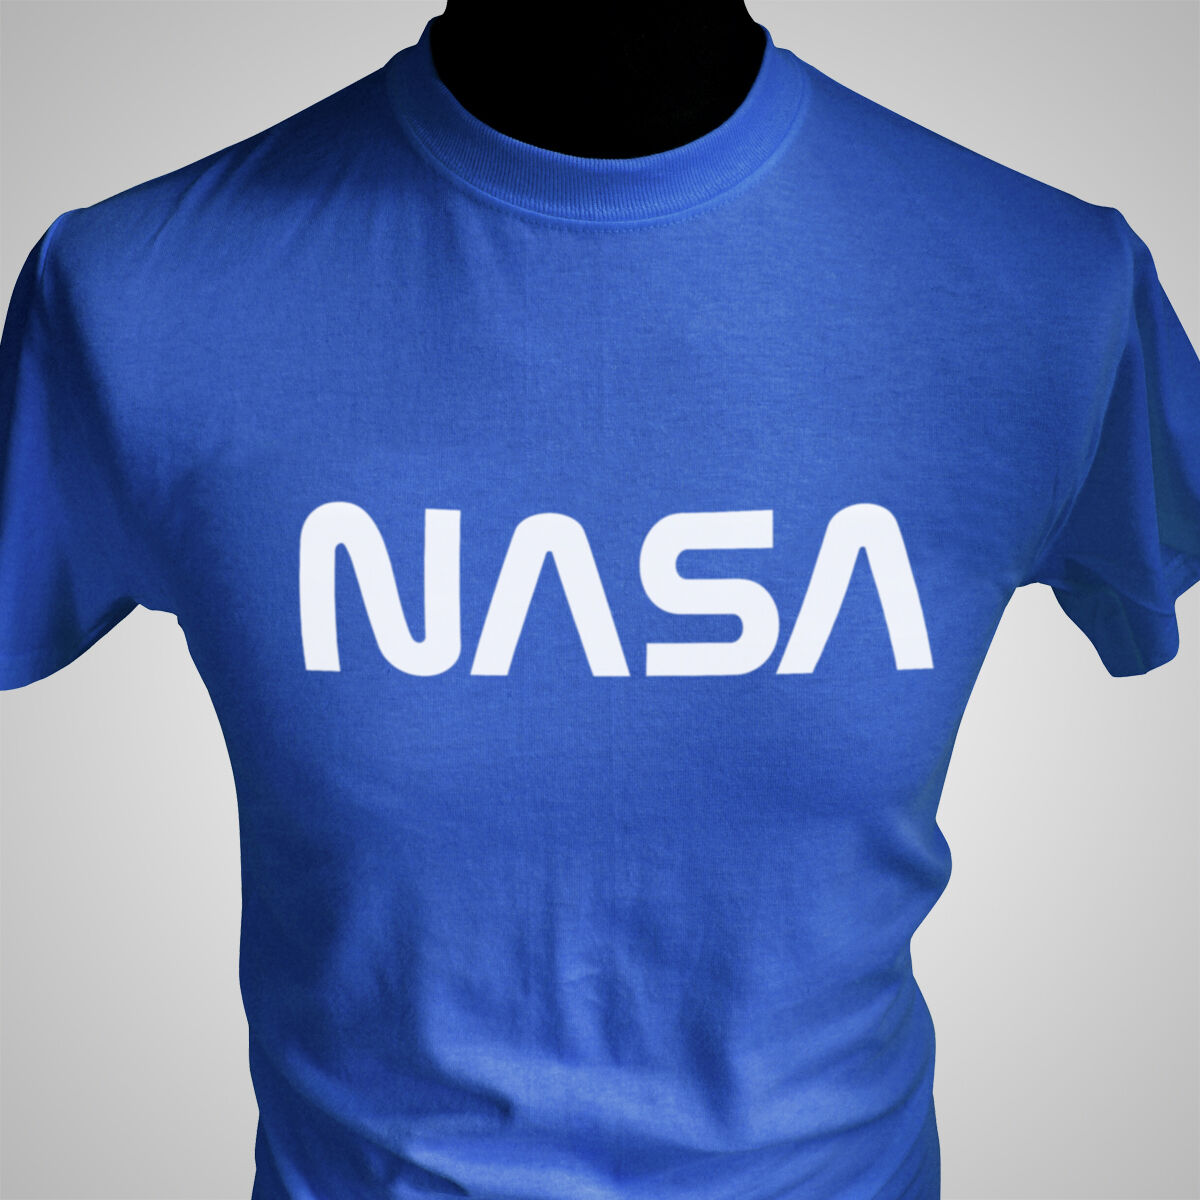 Nasa retro t shirt space academy 70 39 s vintage style tee ebay for Vintage t shirt company